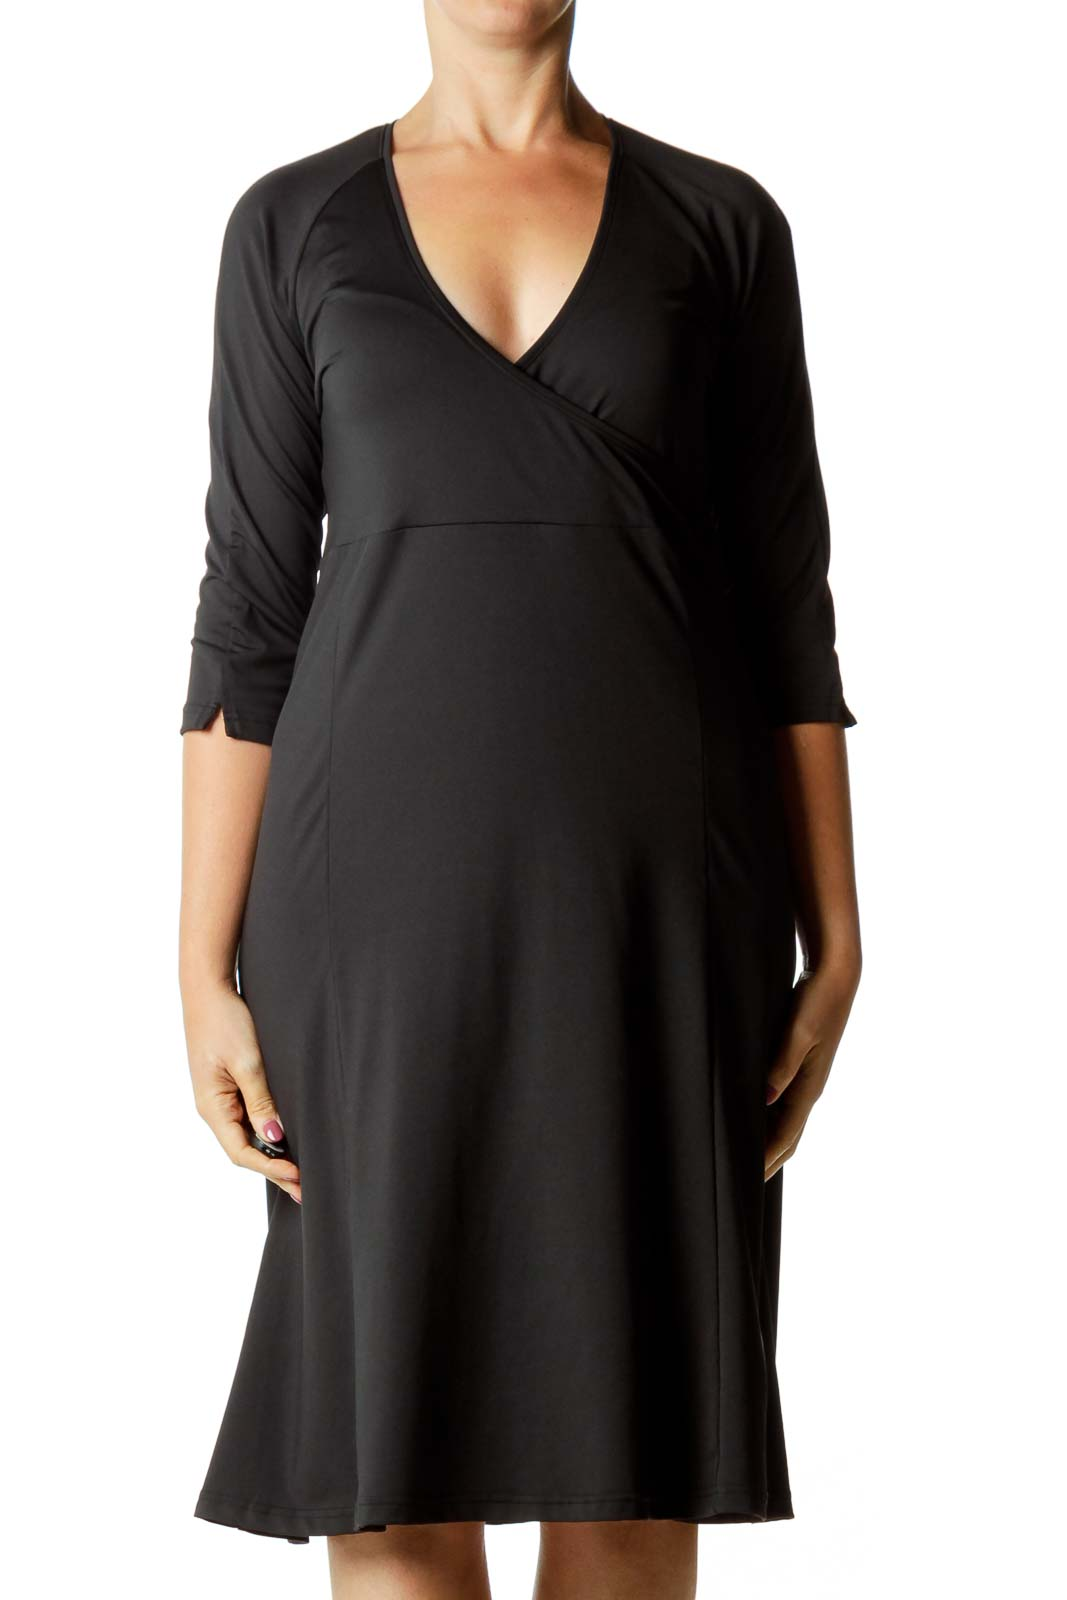 Black V-Neck Athletic Dress